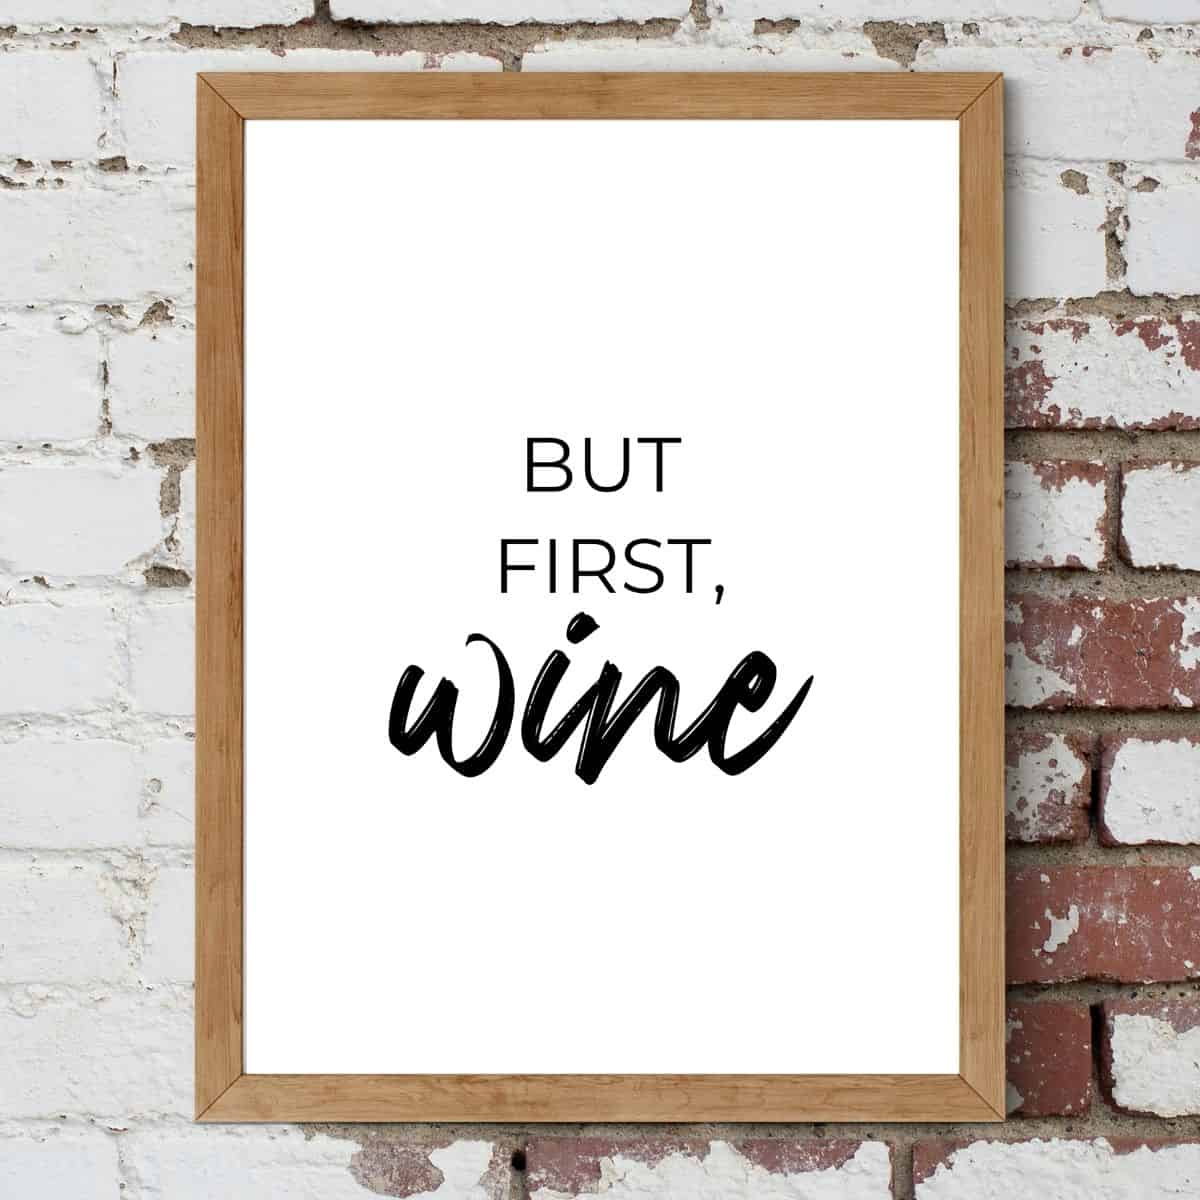 Brown frame on the brick wall with the text: But first, wine